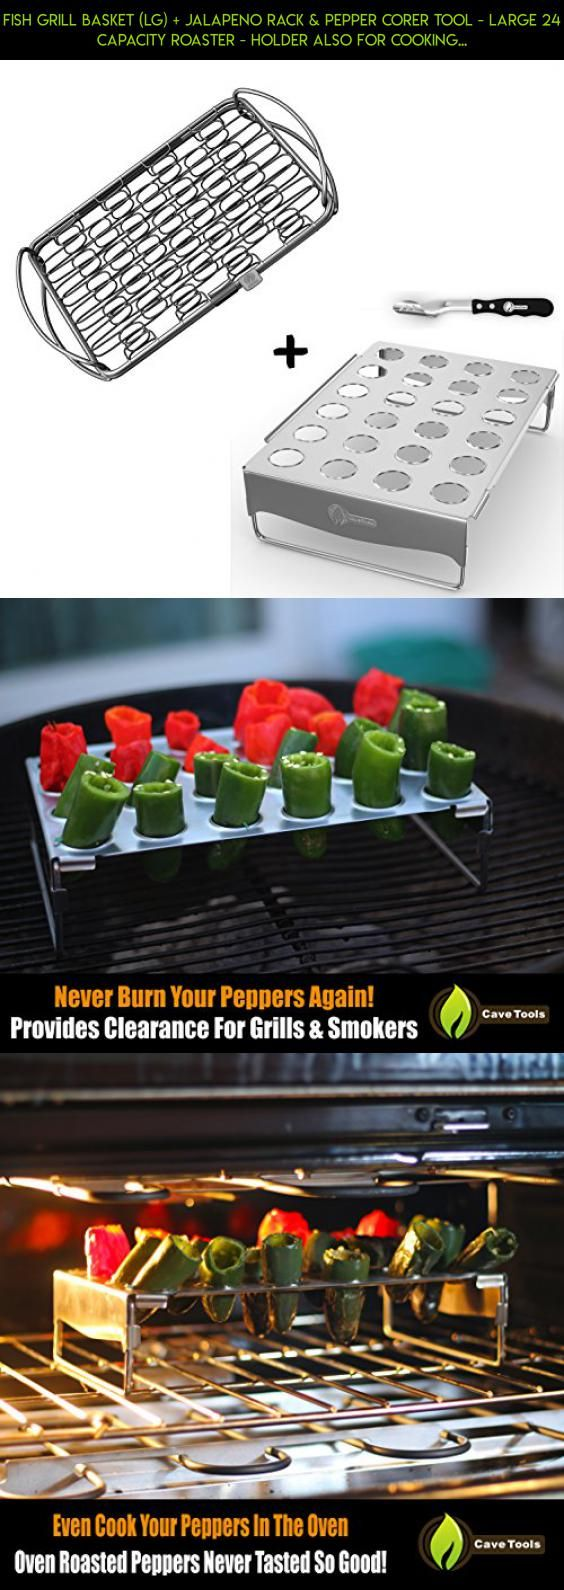 Fish Grill Basket (lg) + Jalapeno Rack & Pepper Corer Tool - LARGE 24 CAPACITY ROASTER - Holder Also For Cooking Chili or Chicken Legs & Wings on BBQ Smoker or Oven - Dishwasher Safe Stainless Steel #racing #products #grills #technology #camera #sausage #tech #my #fpv #plans #shopping #kit #love #drone #gadgets #parts